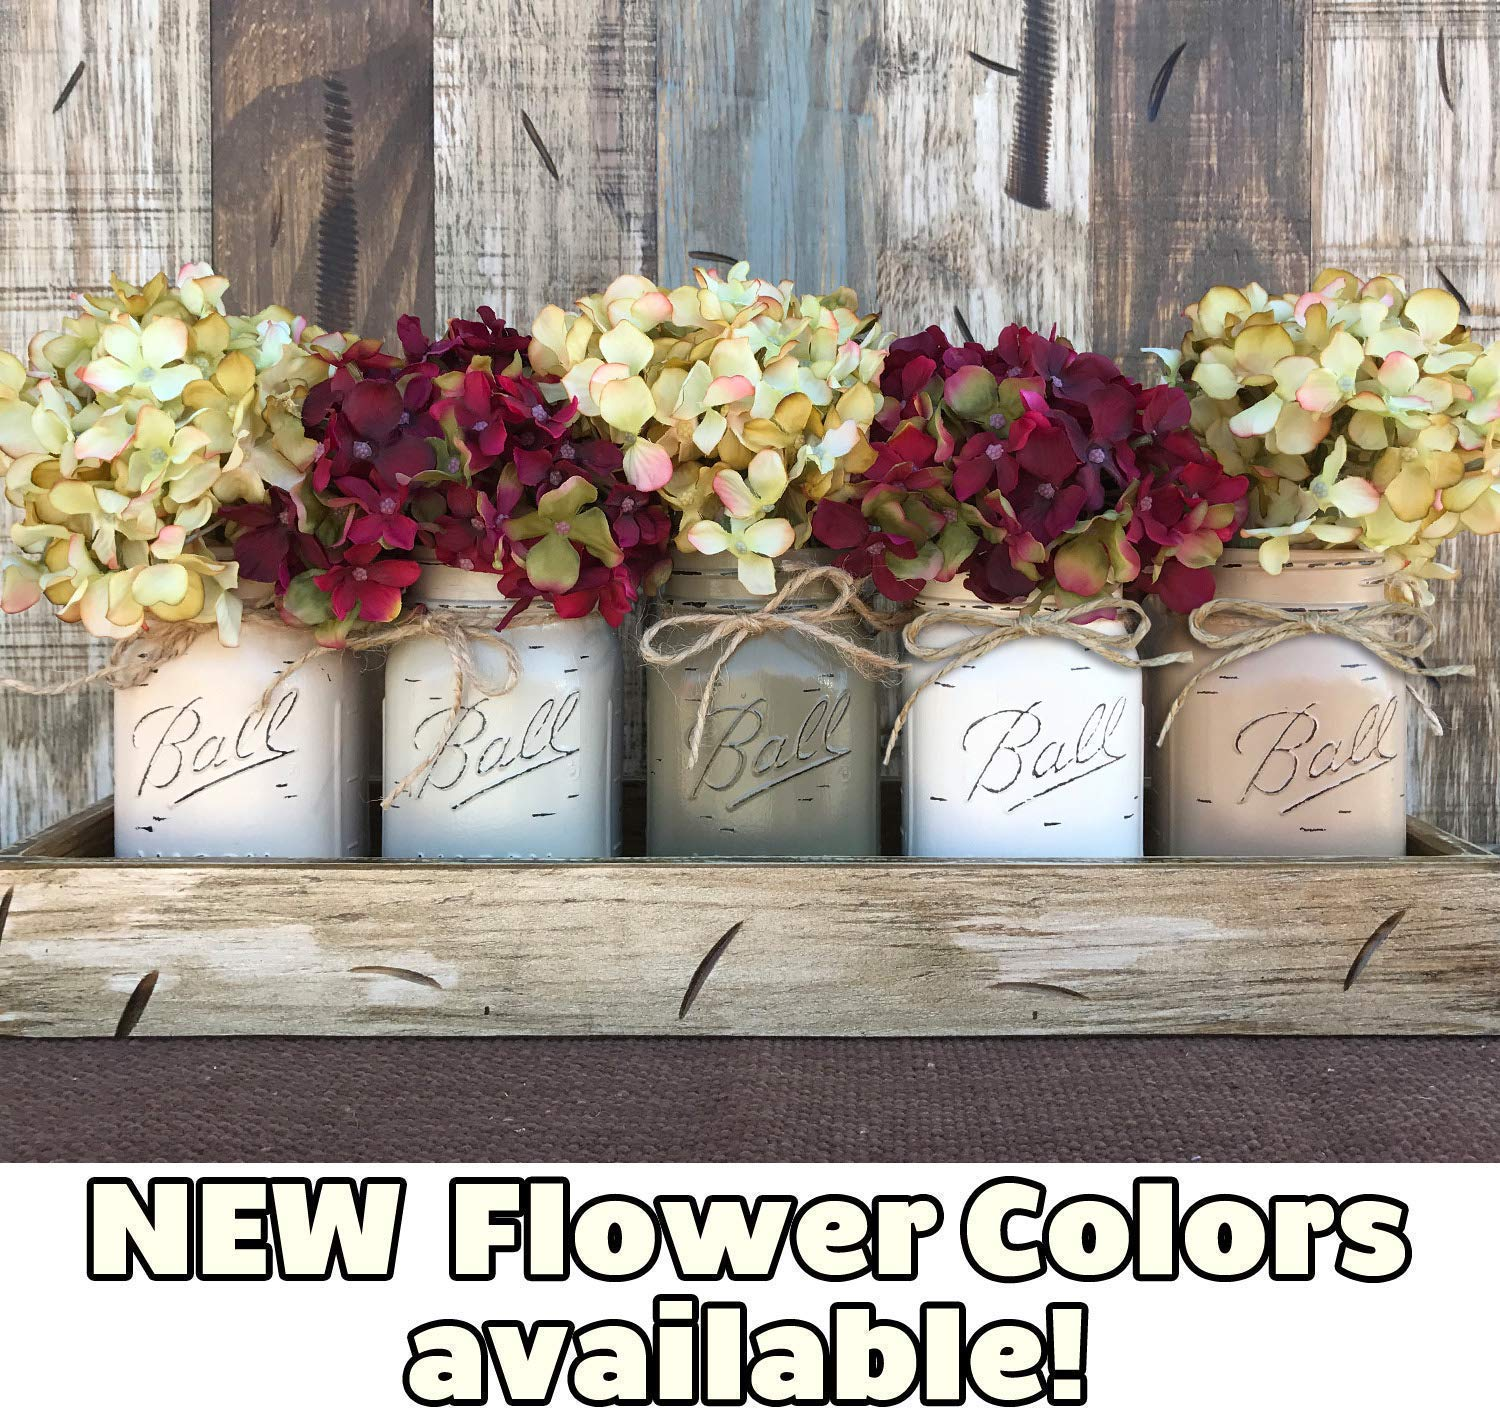 Mason Canning JARS in Wood or Metal Tray Centerpiece with 5 Ball Pint Jar  -Kitchen Table Decor -Distressed -Flowers (Optional)- SAND, THISTLE,  PEWTER, ...